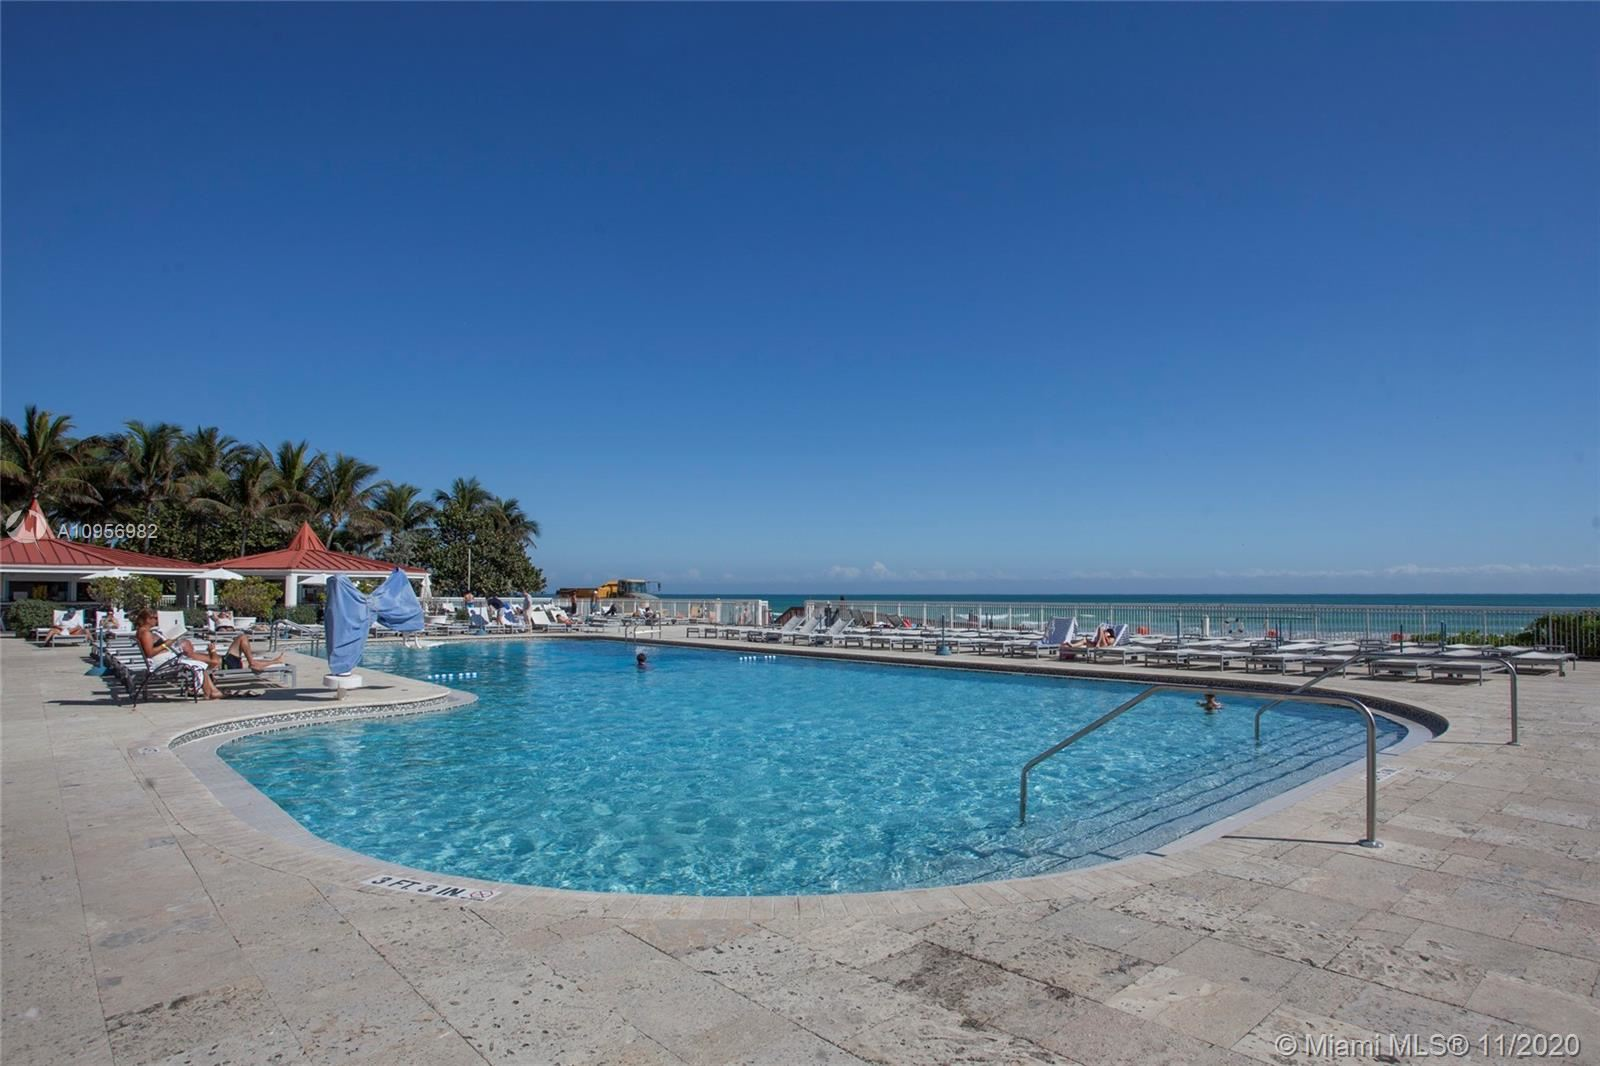 19201 Collins Ave #326, Sunny Isles, FL 33160 - #: A10956982